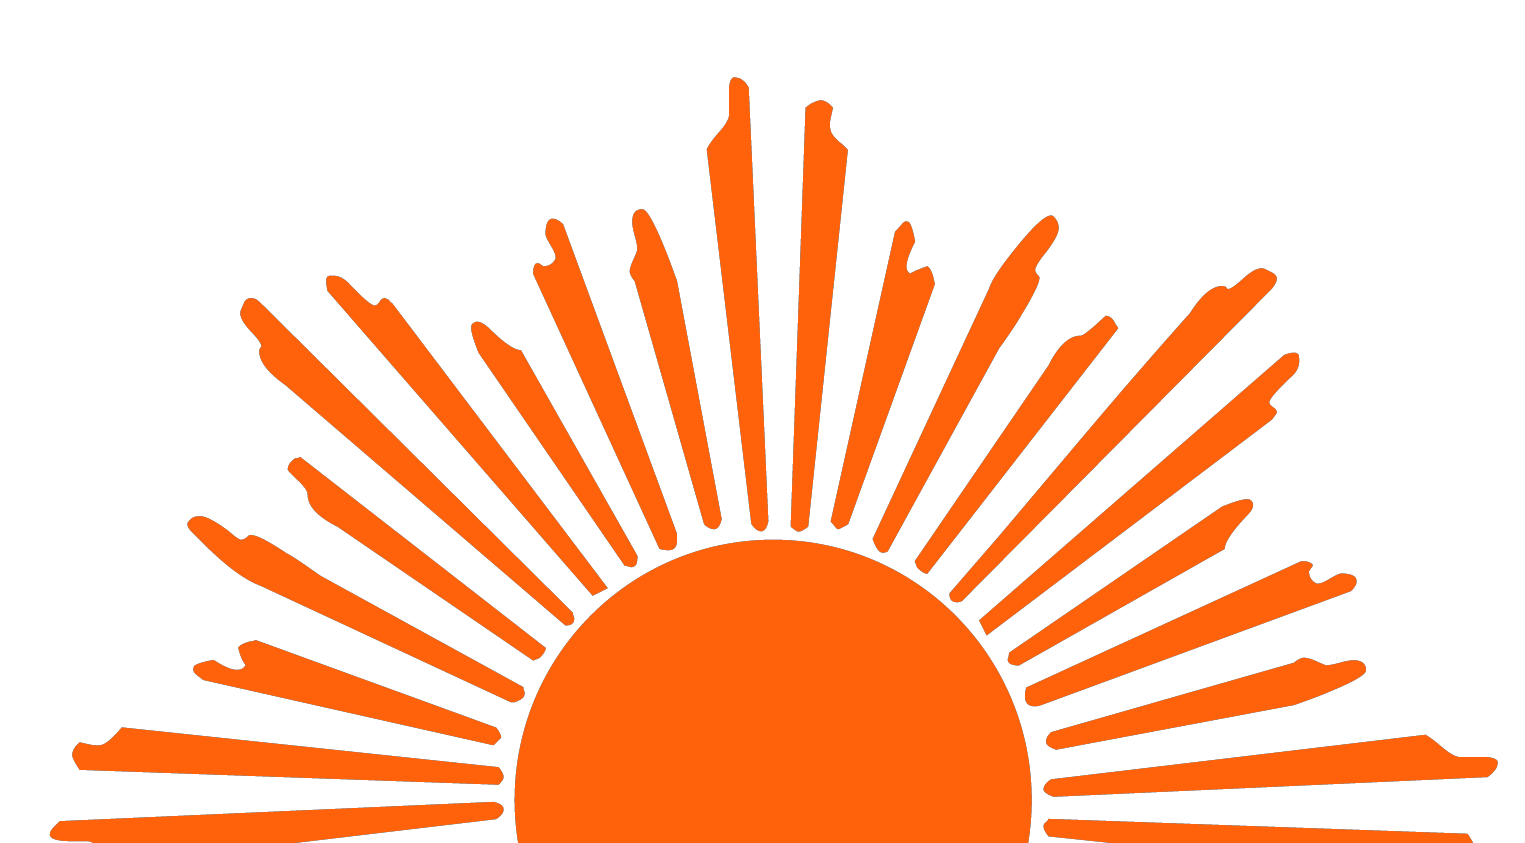 Rising sun cliparts co. Sunset clipart logo